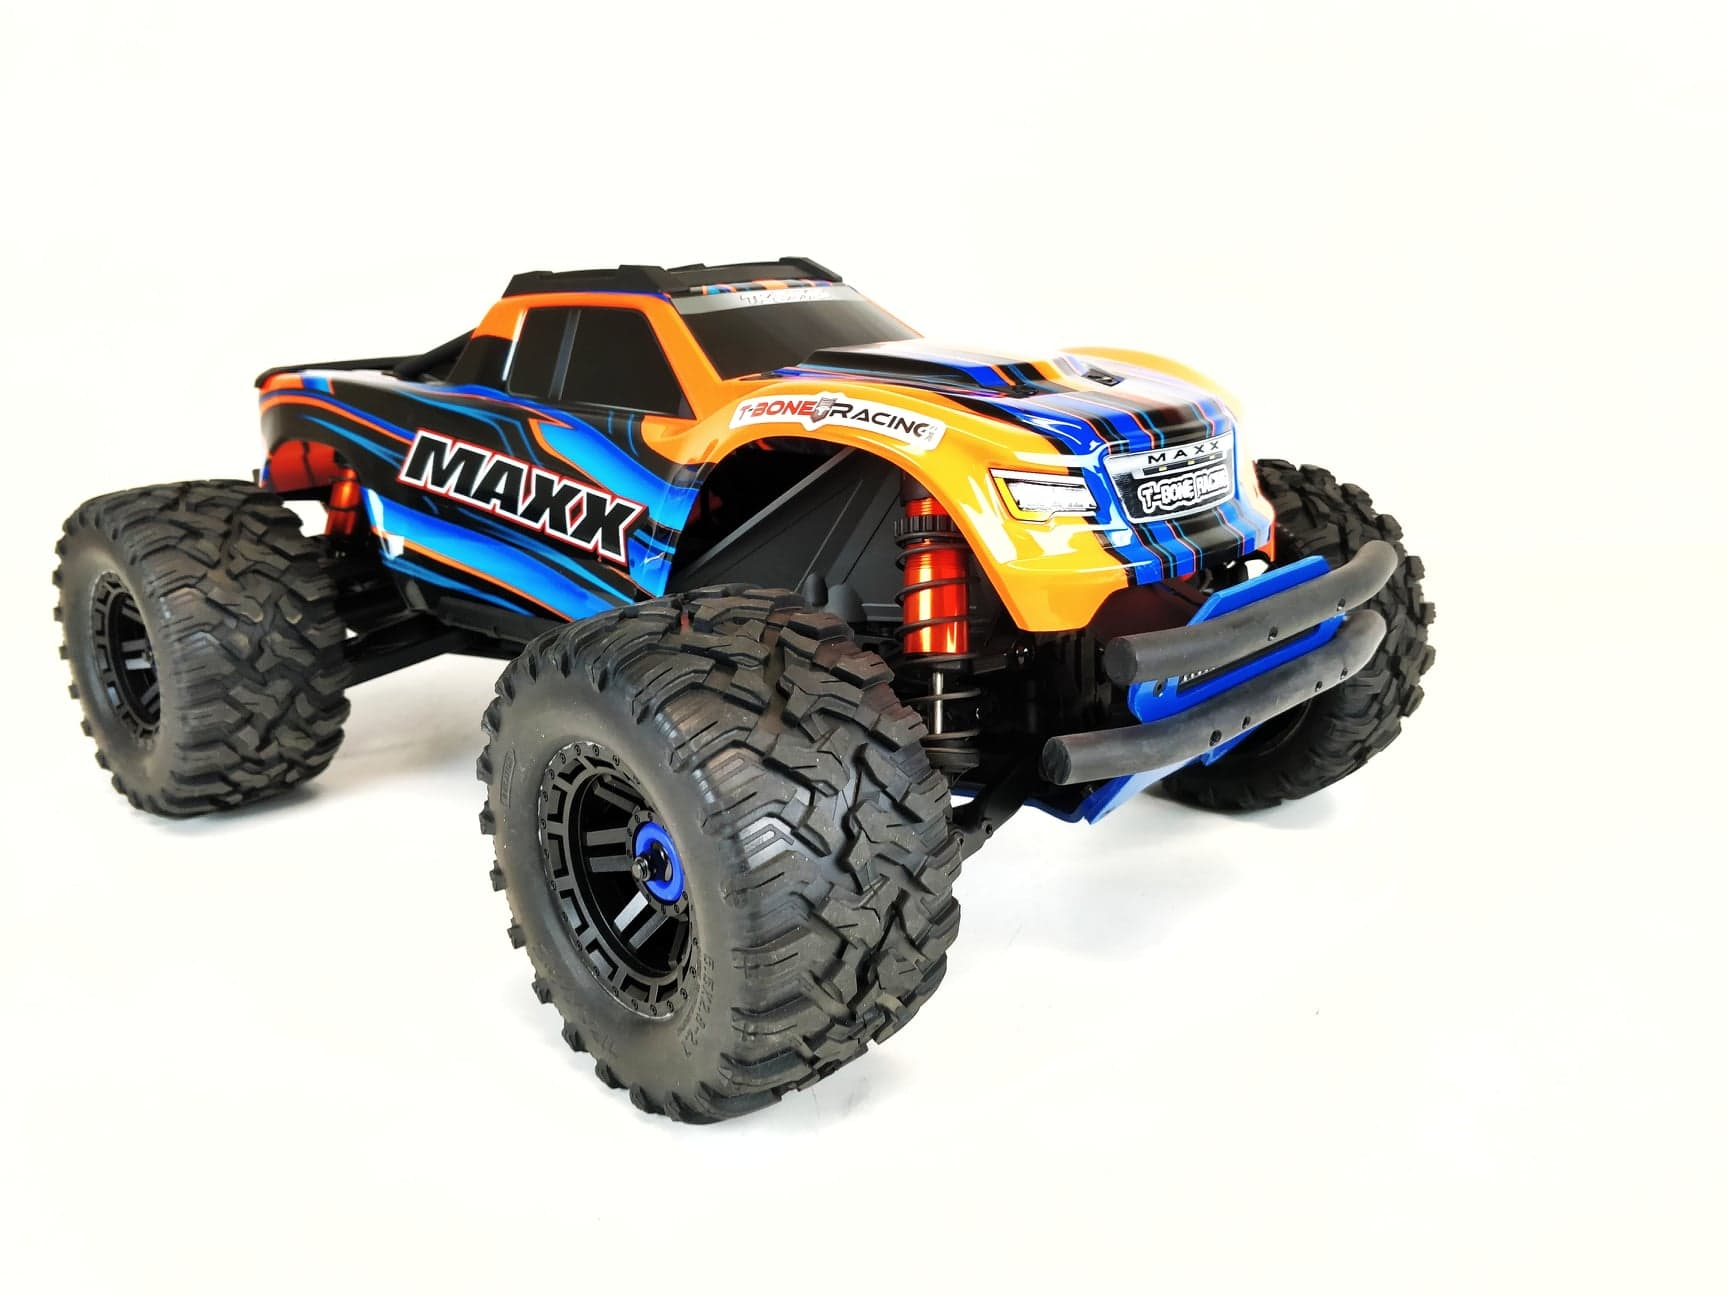 Traxxas Maxx 4s Xv4 Front Bumper From T Bone Racing Find great deals on ebay for traxxas x maxx body. xv4 front bumper traxxas maxx 62212